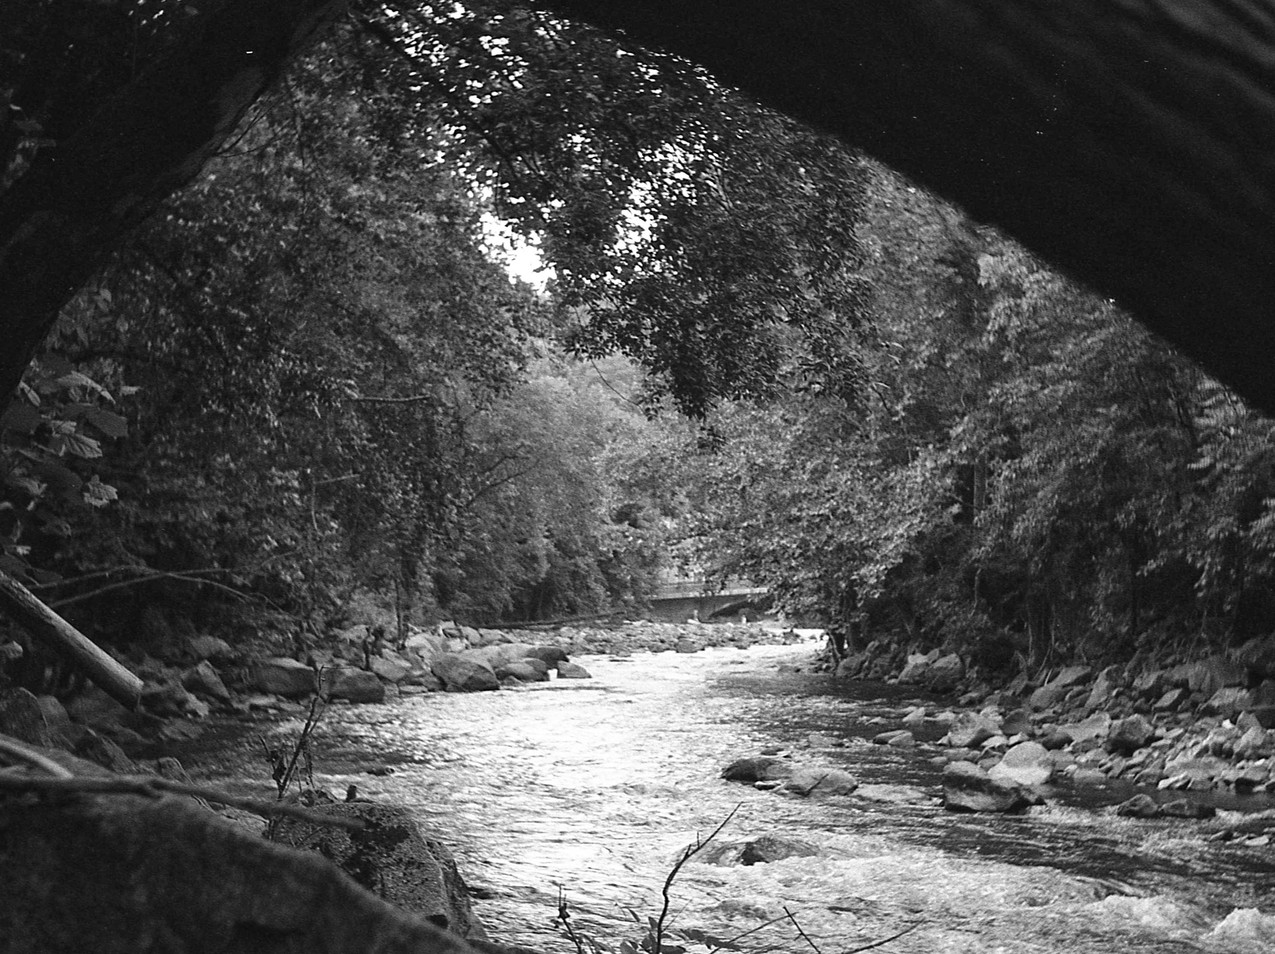 View of the Patapsco River